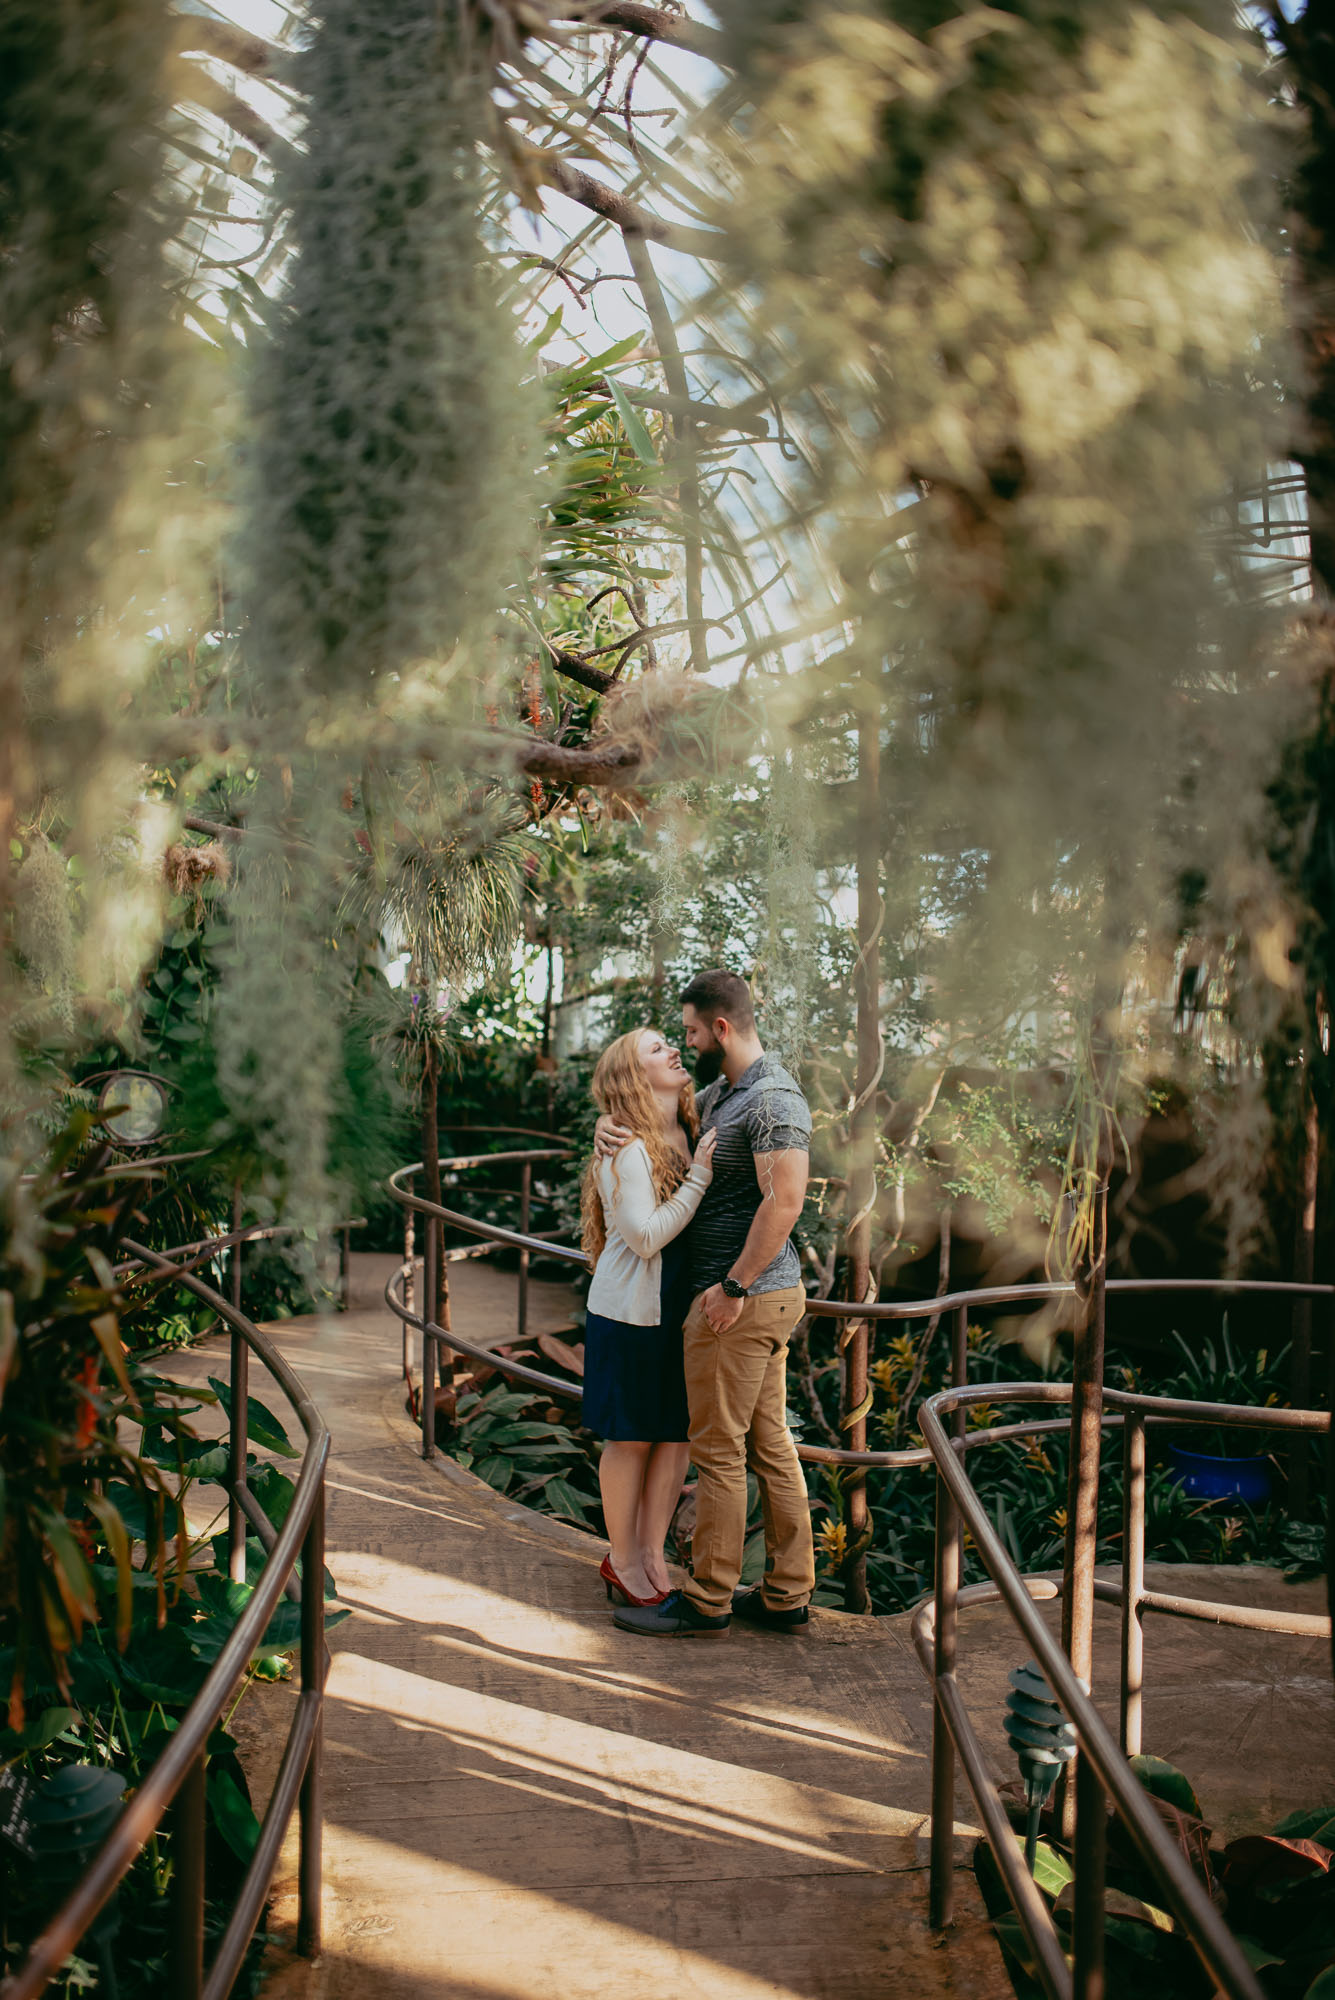 garfield-conservatory-engagement-photos-chicago-il-photographers-49.jpg